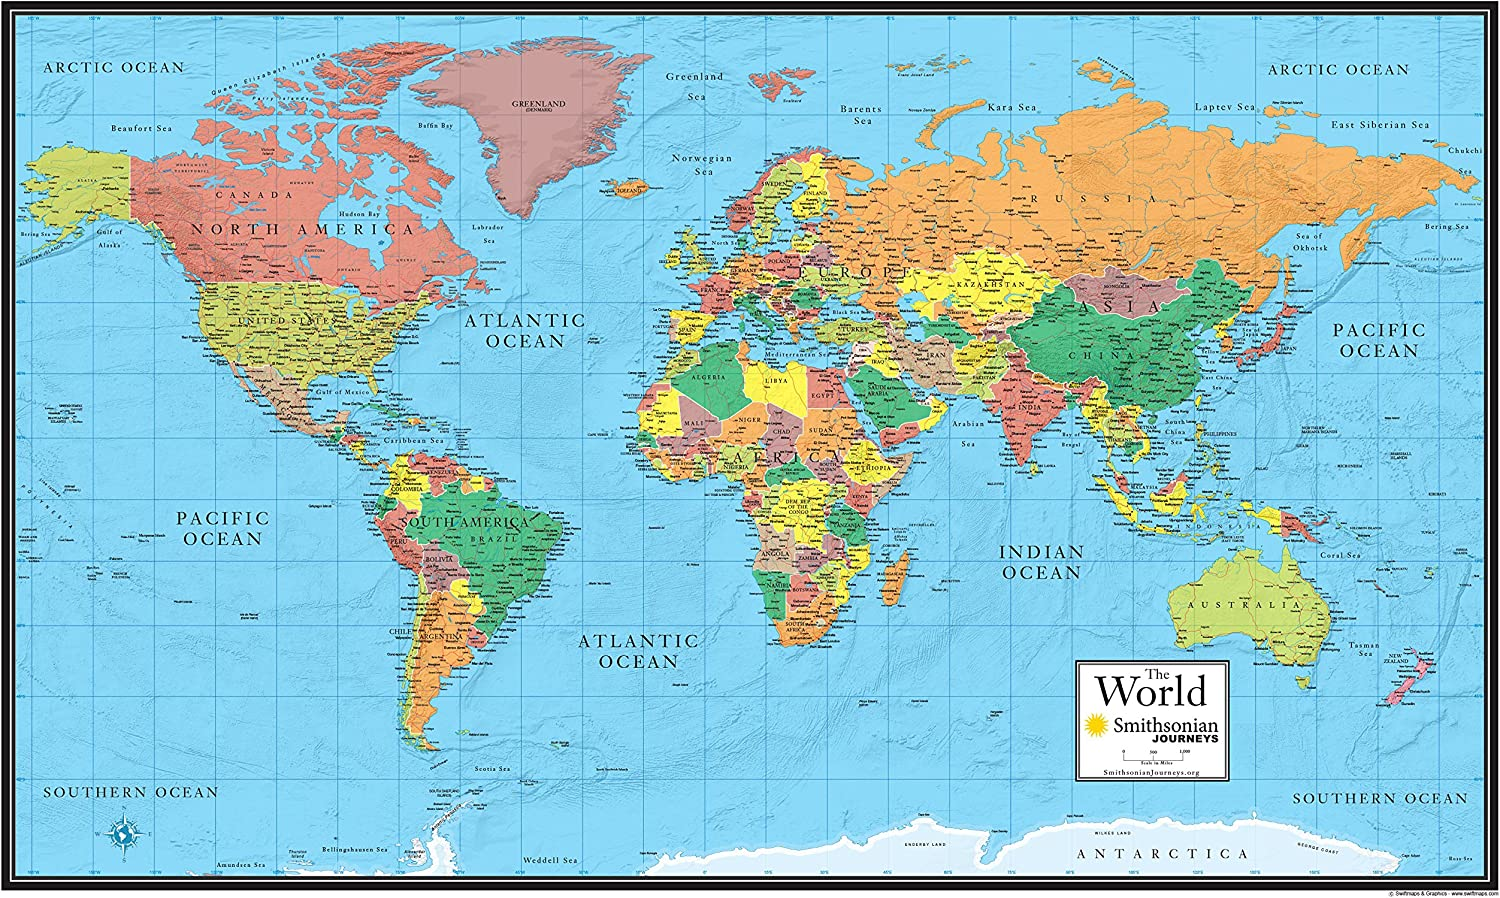 24x36 World Wall Map by Smithsonian Journeys - Blue Ocean Edition Laminated (24x36 Laminated)